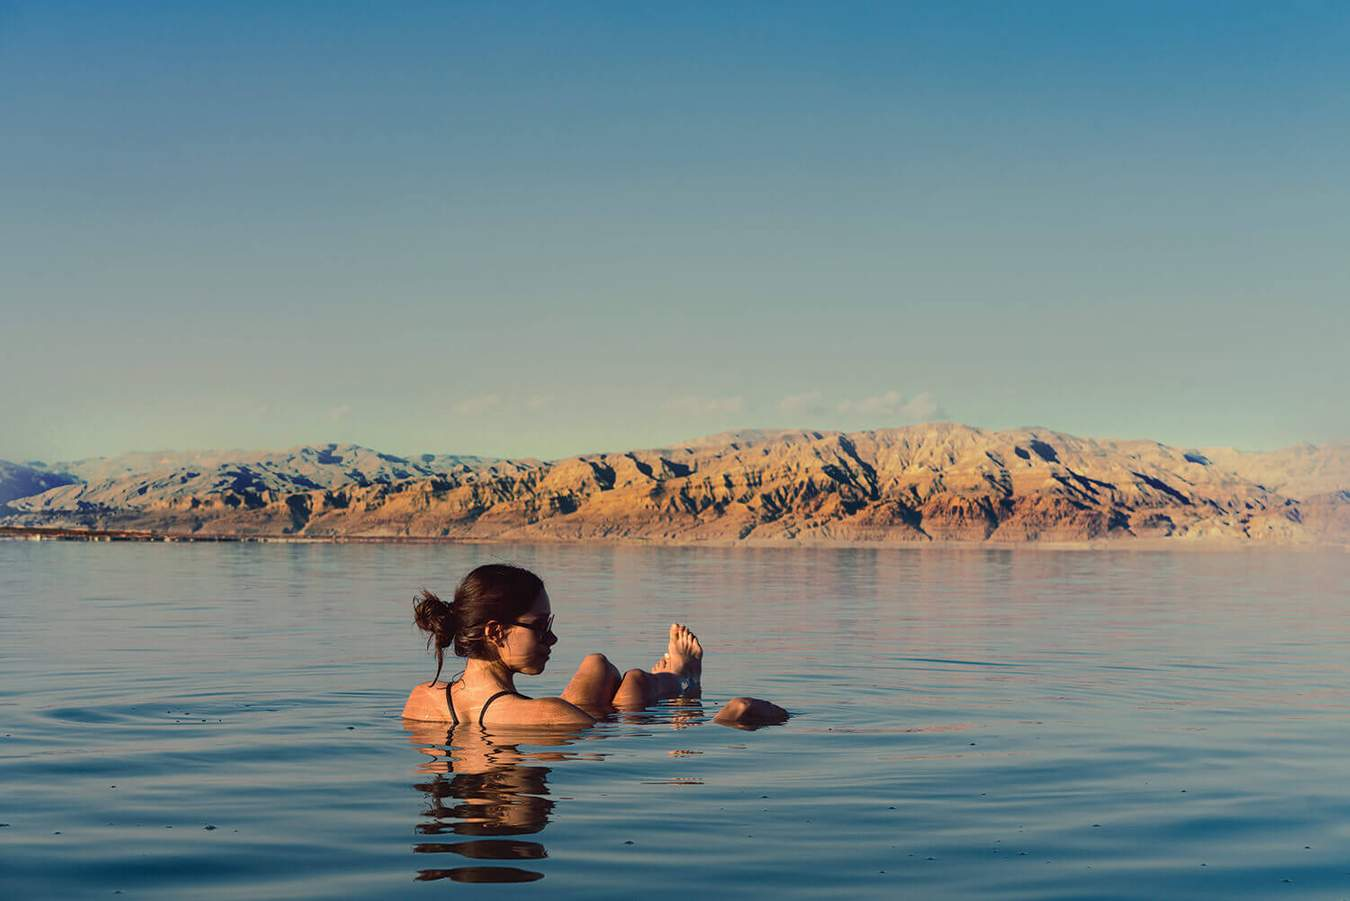 Relax in the Dead Sea in Jordan